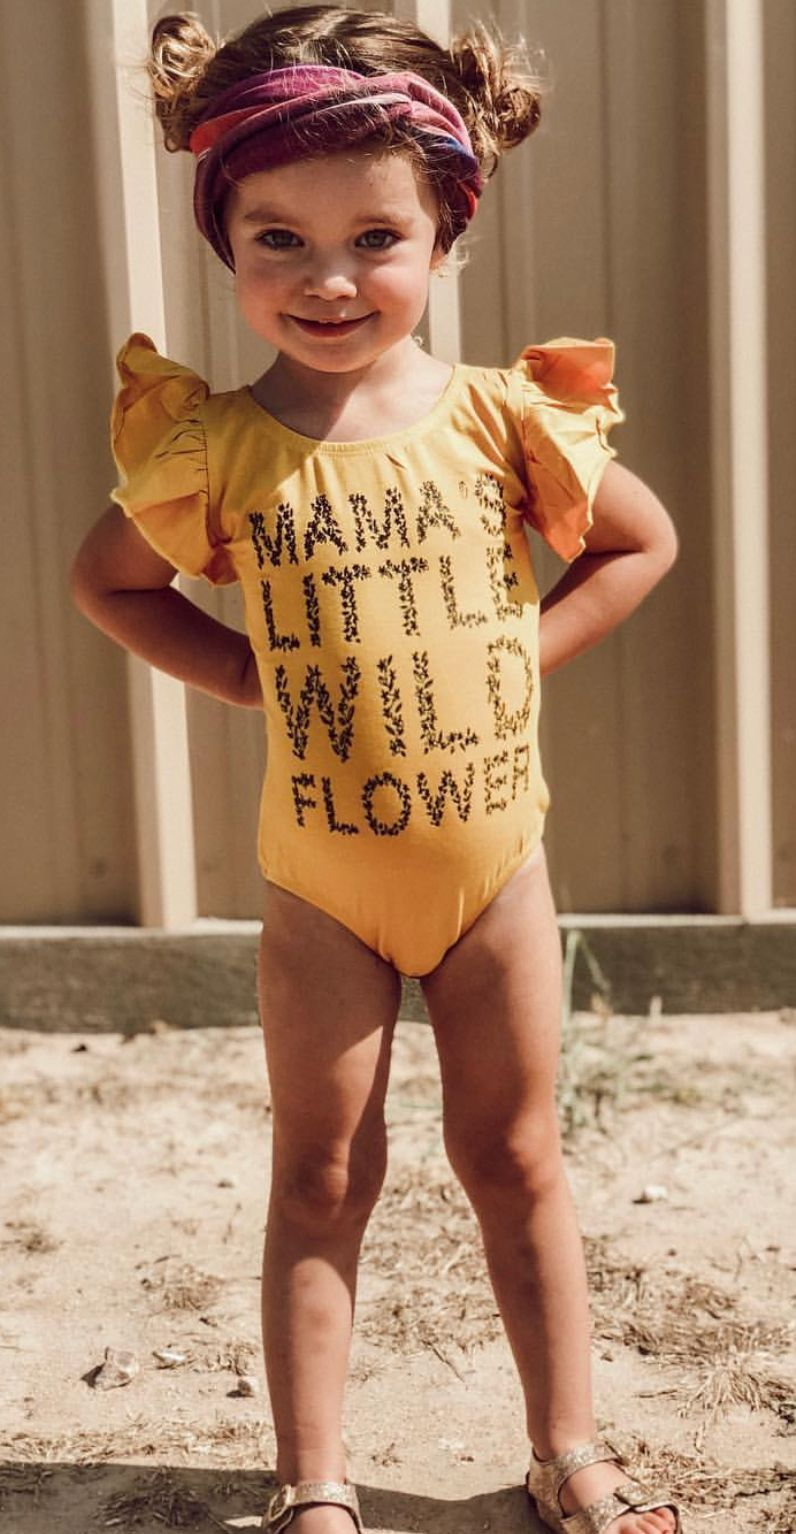 422cb16a8 Leotard, Leo, girls fashion, girls style, toddler girl, baby girl, little  girl, outfits for kids, Little girls outfits, , flower child, hippie,  hippie kid, ...